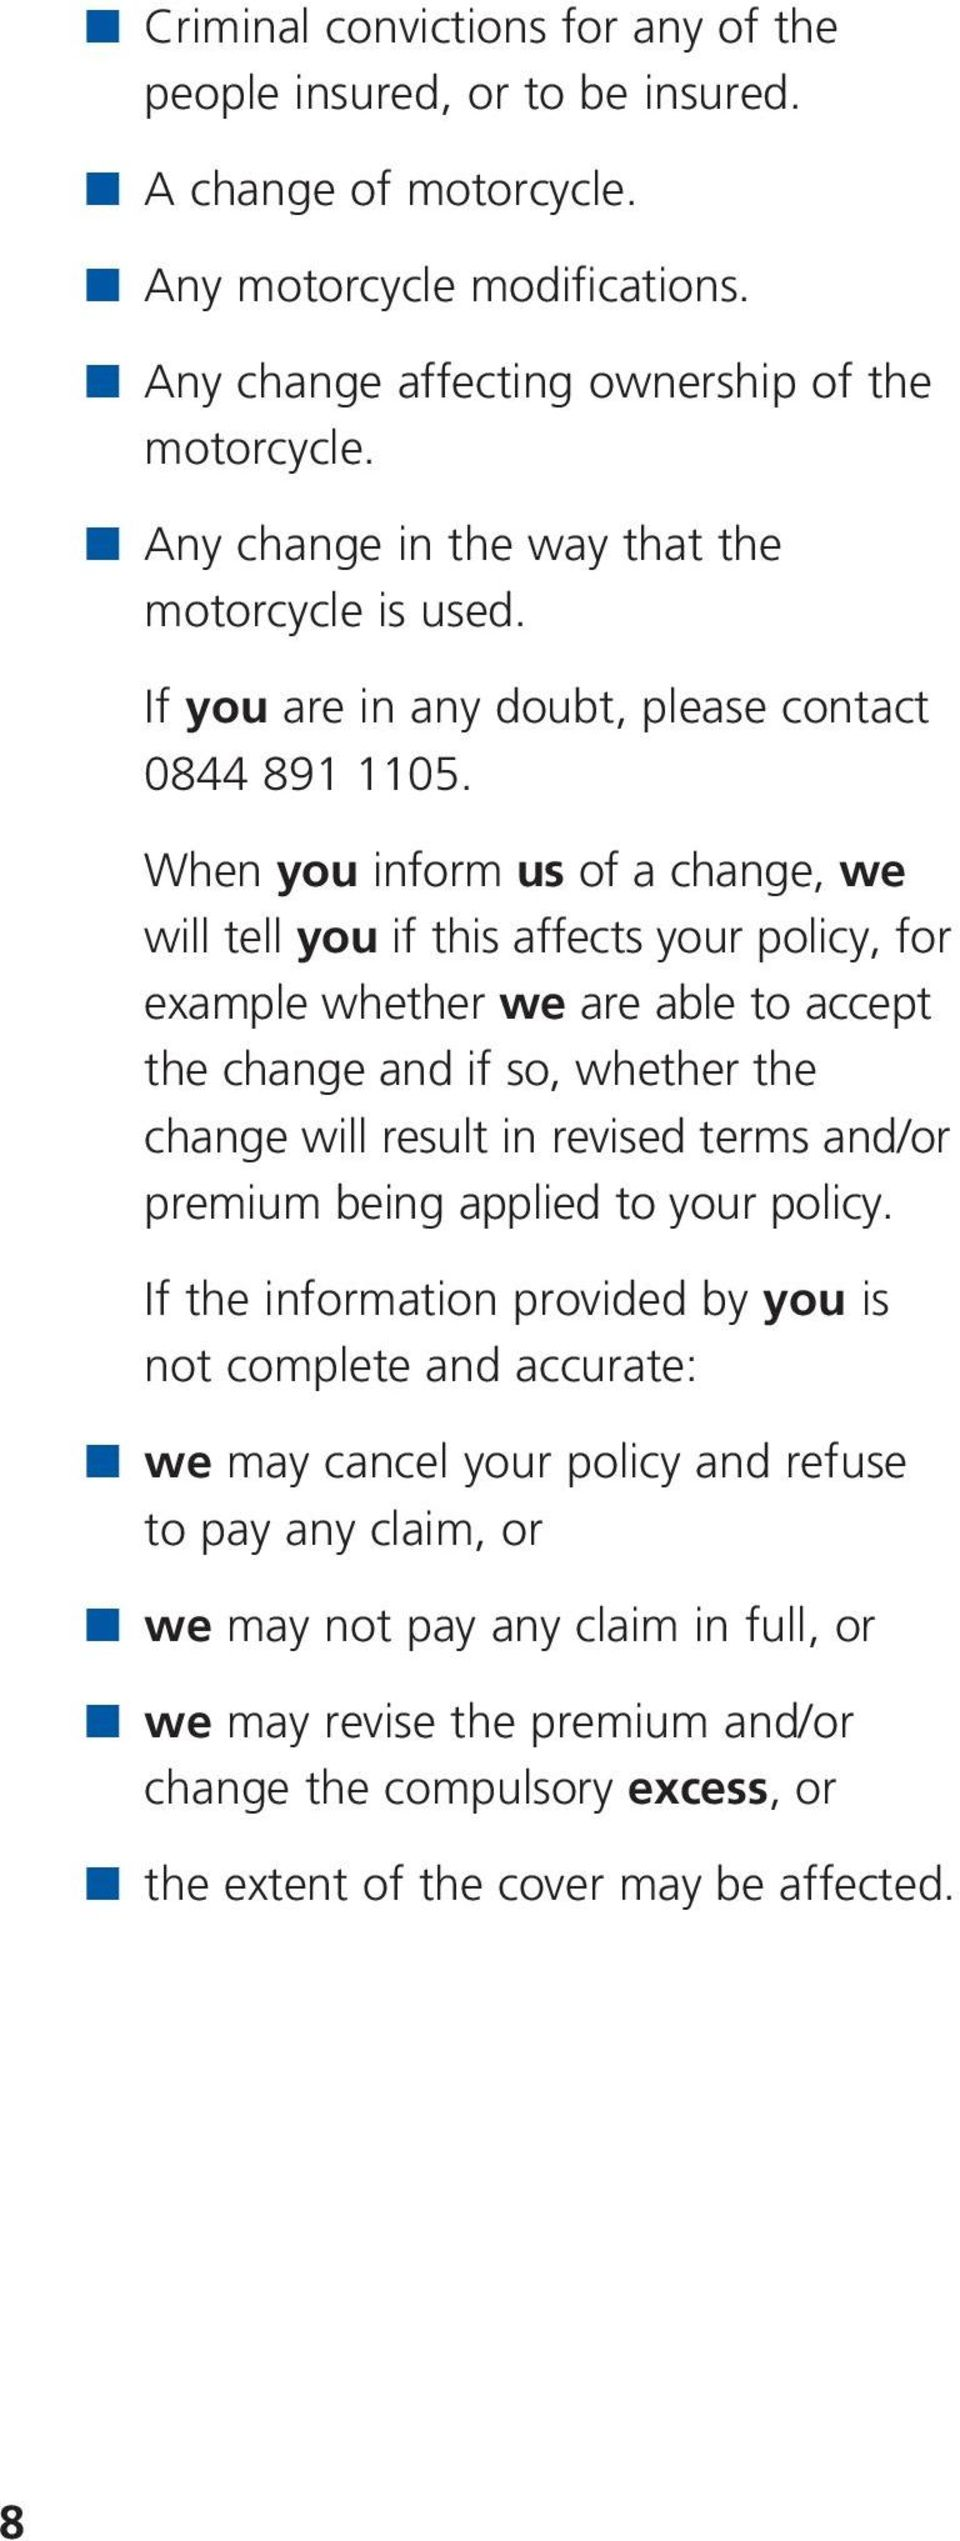 When you inform us of a change, we will tell you if this affects your policy, for example whether we are able to accept the change and if so, whether the change will result in revised terms and/or